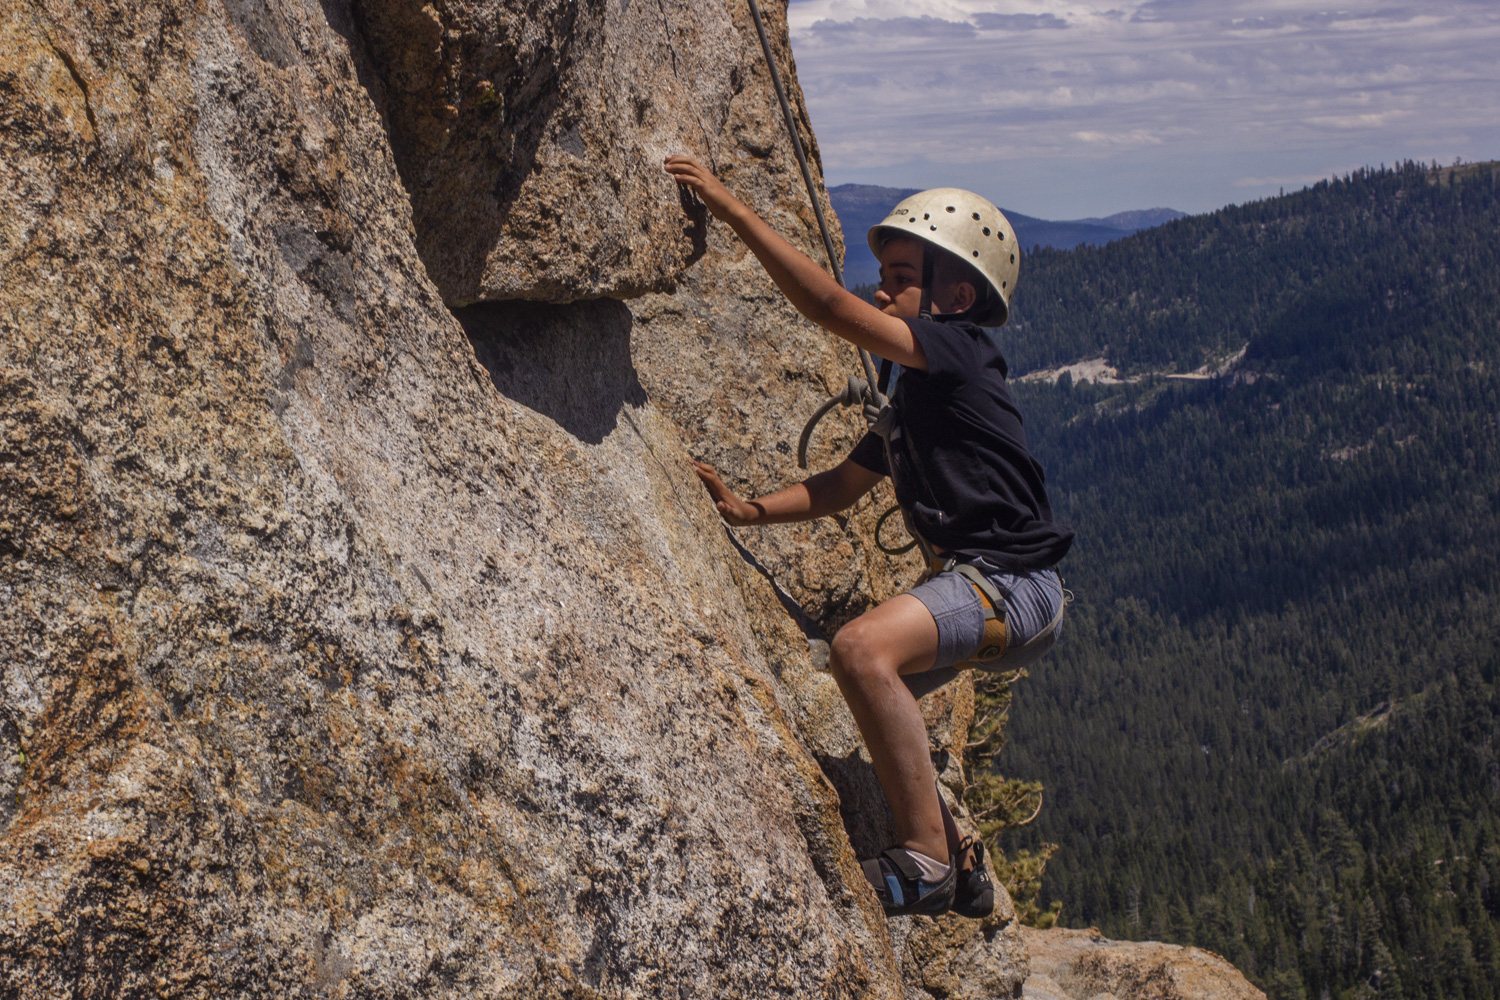 Summer camp can help your son gain confidence.